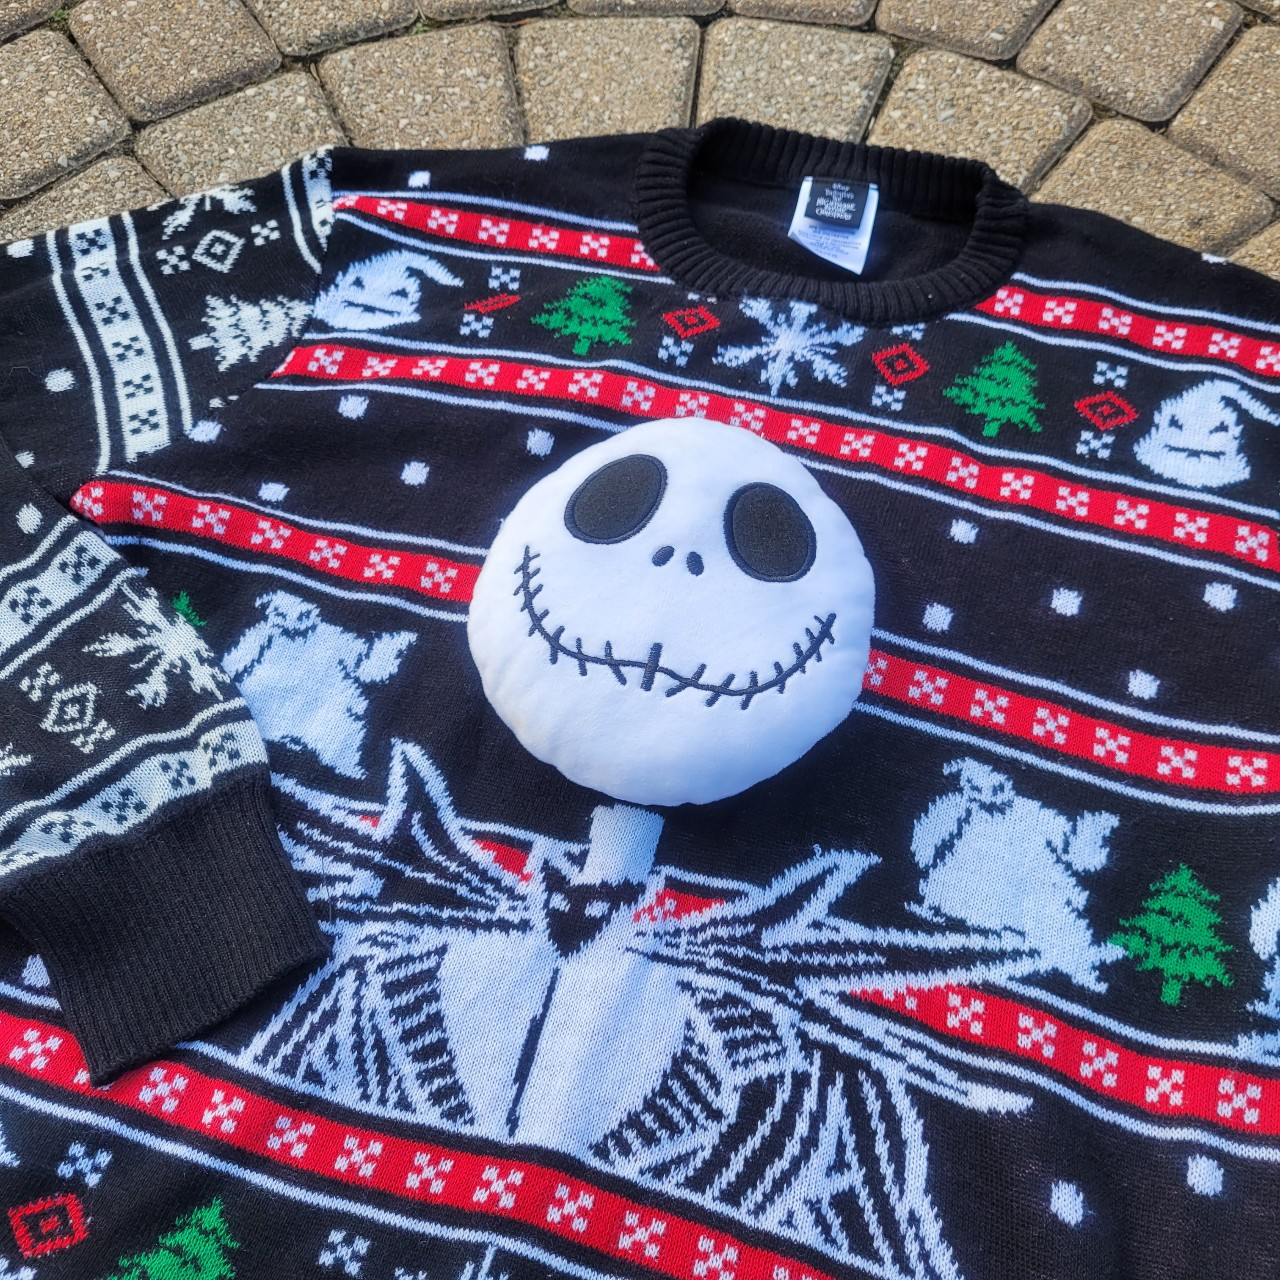 Product Image 1 - The Nightmare Before Christmas Sweater